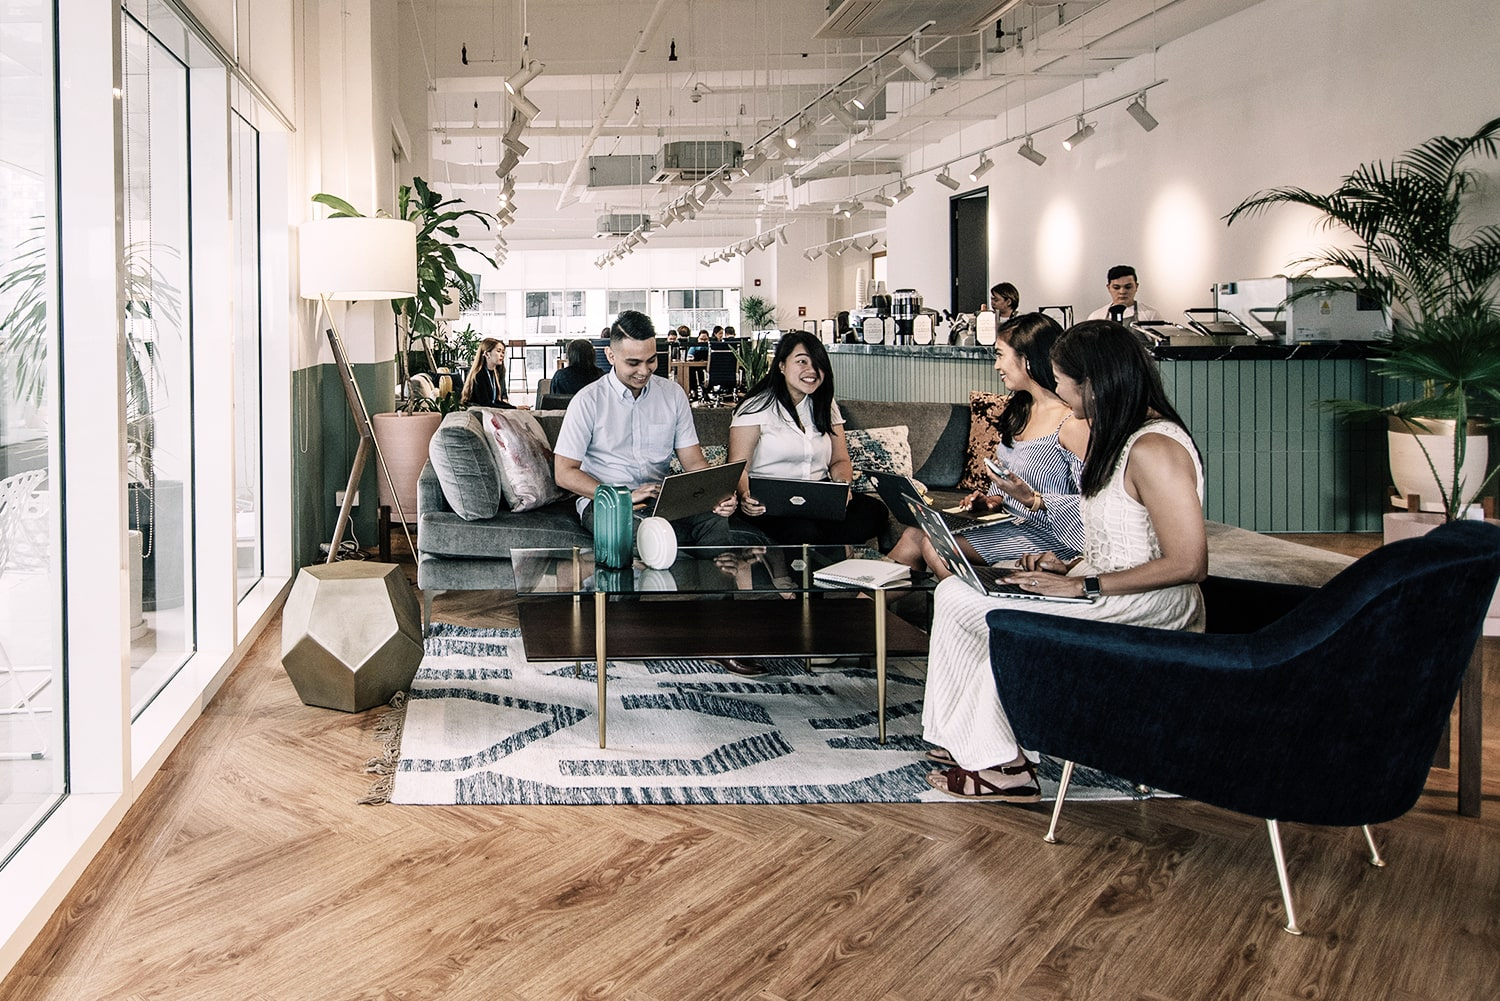 Coworking Advantages and Disadvantages